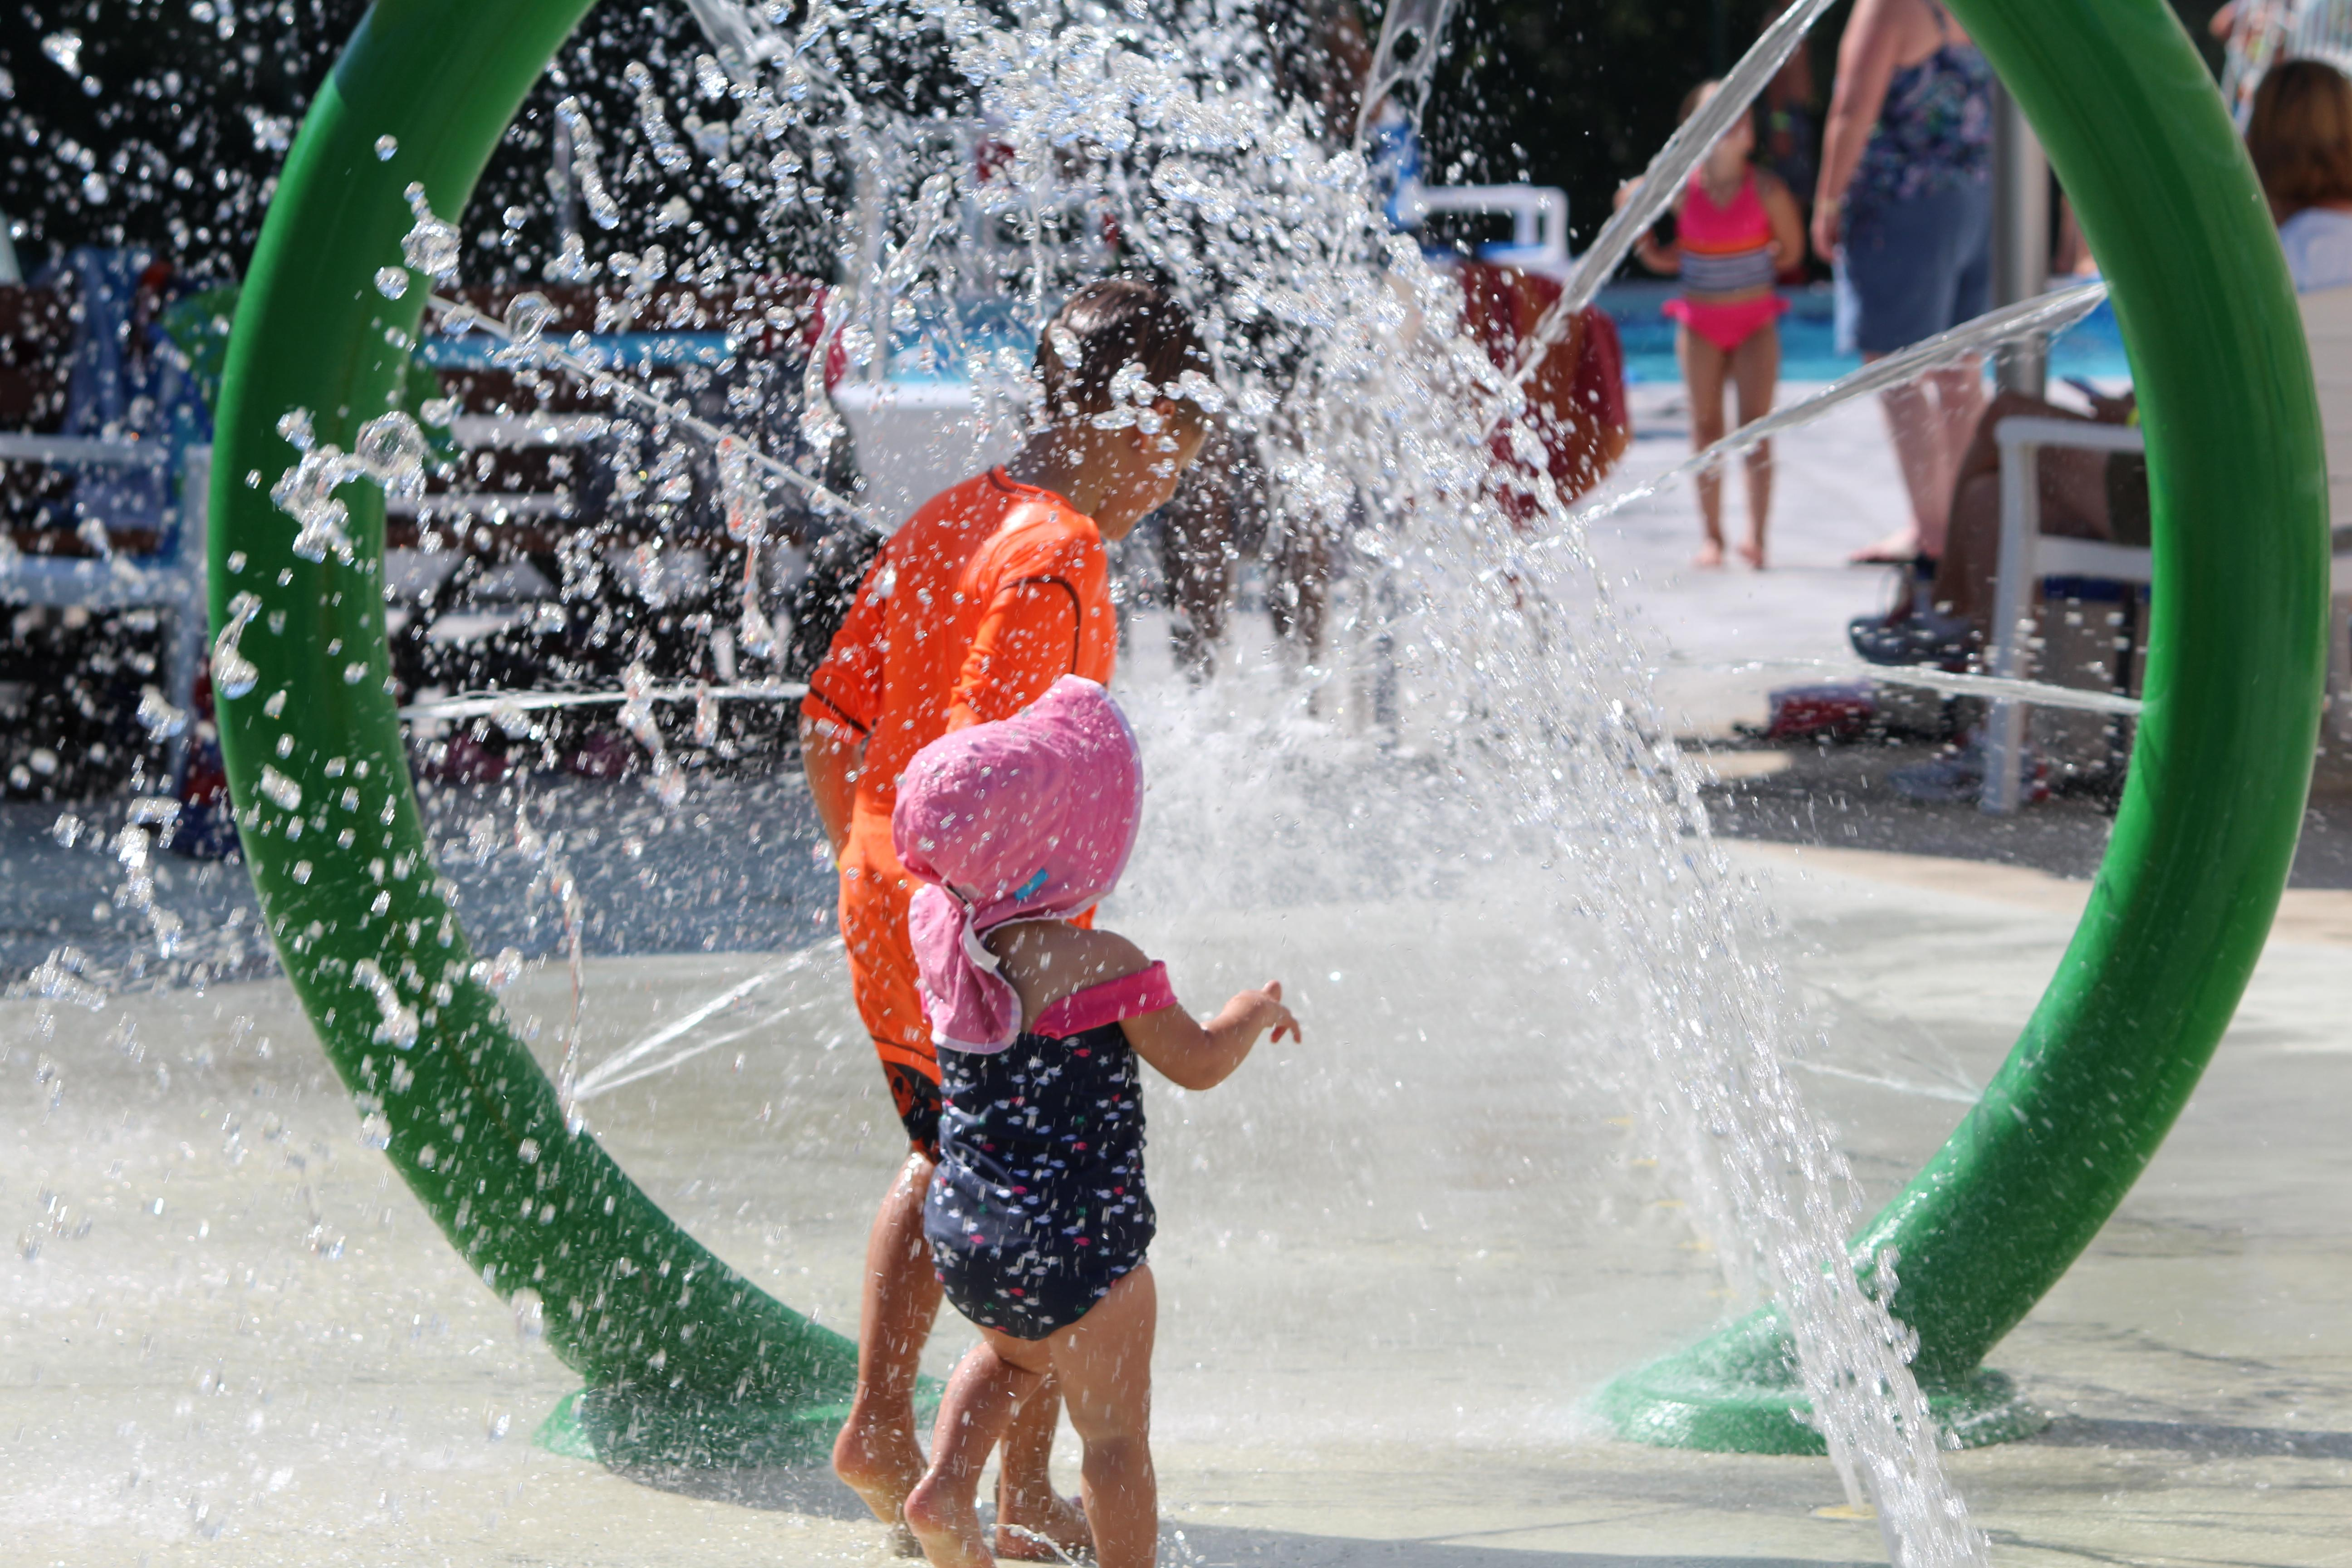 Ipswich outdoor waterpark and pool